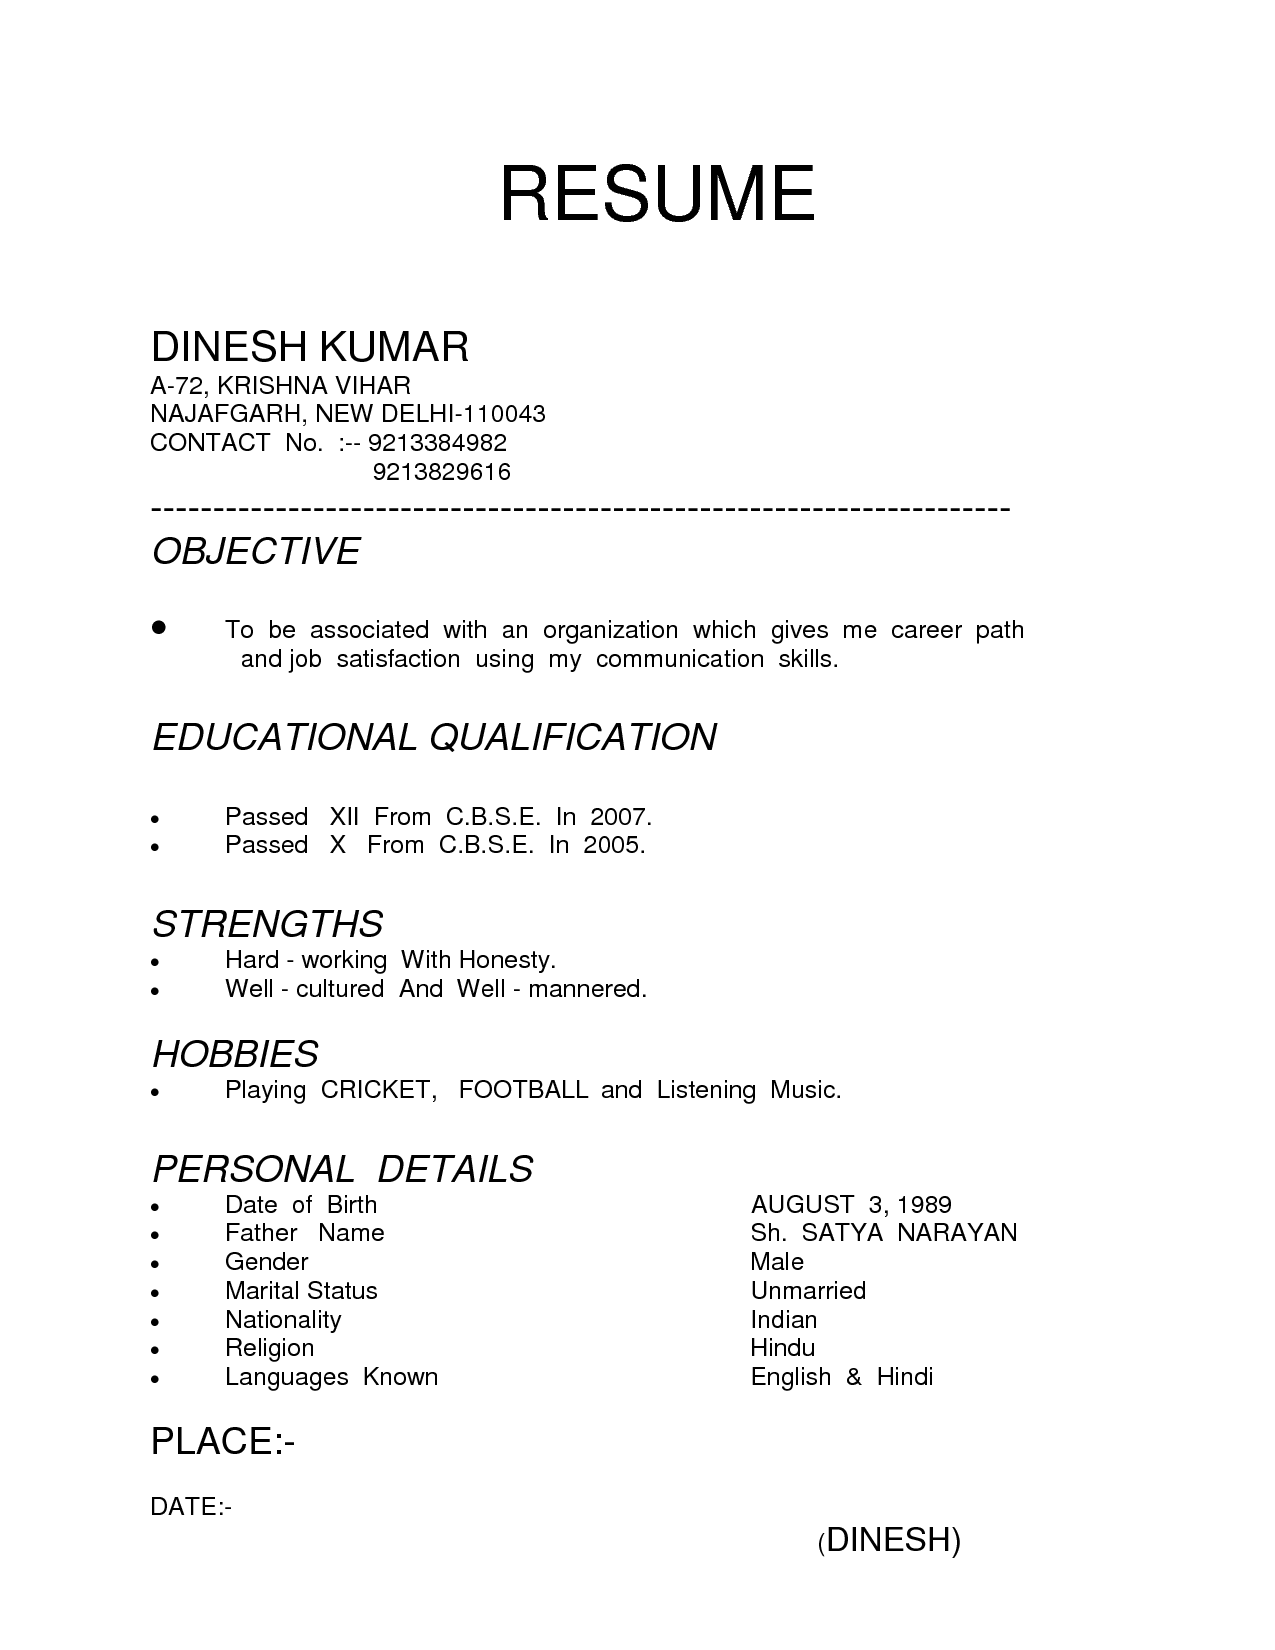 How To Type A Resume Best Types Of Resumes To Use Inspirational 4 Different Types Of Resumes Of Best Types Of Resumes To Use how to type a resume|wikiresume.com